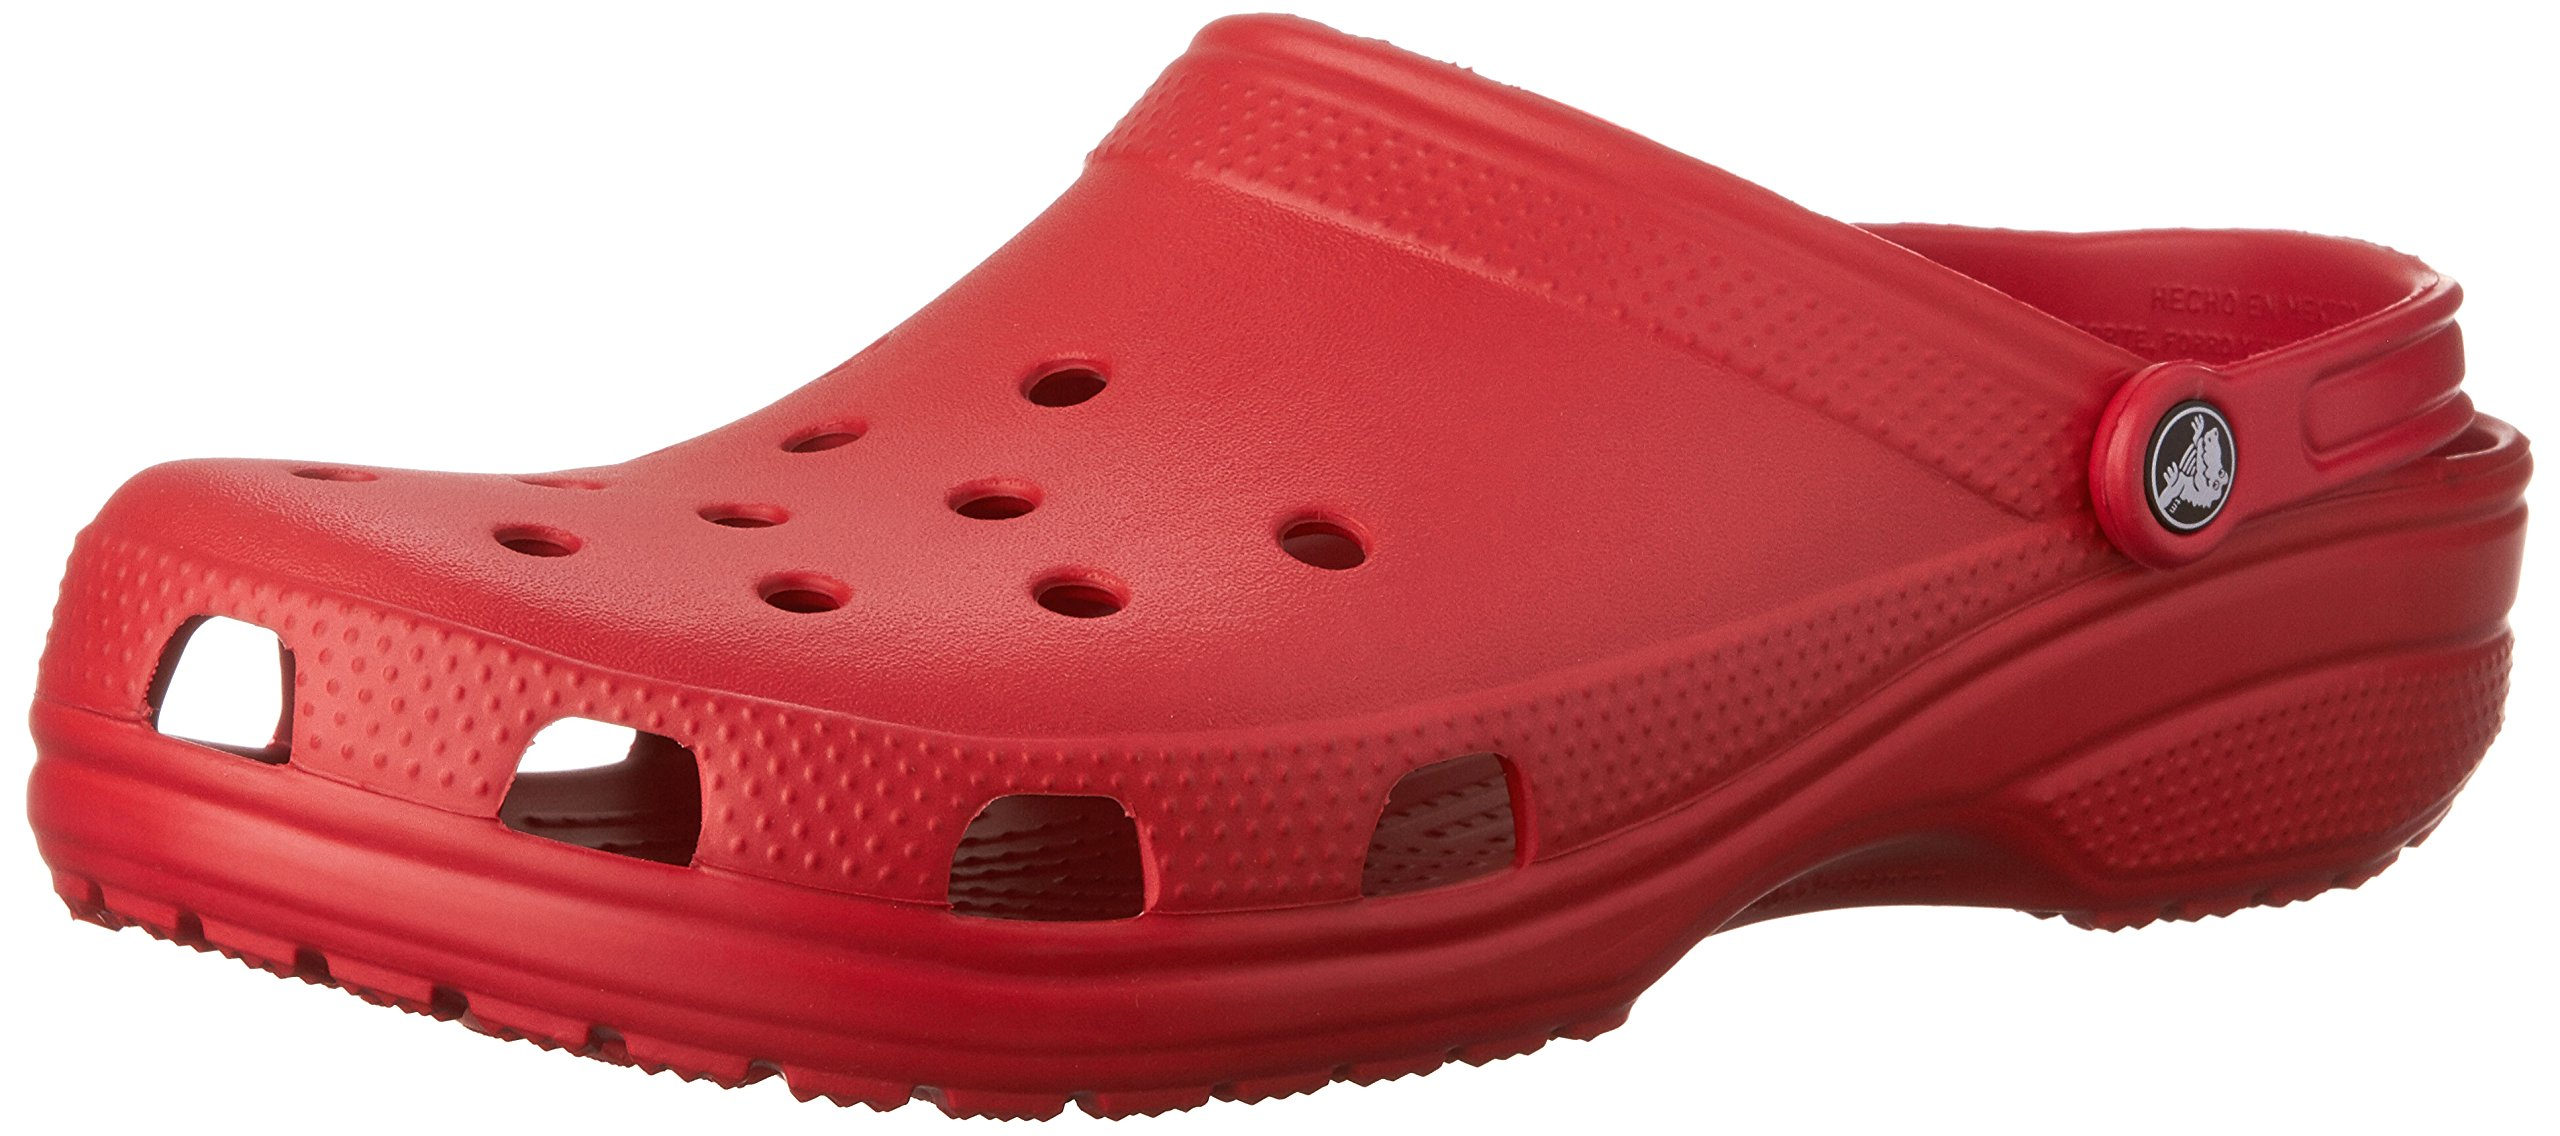 6477e9cf78053 Crocs Men's and Women's Classic Clog, Comfort Slip On Casual Water Shoe,  Lightweight, Pepper, 13 US Women / 11 US Men